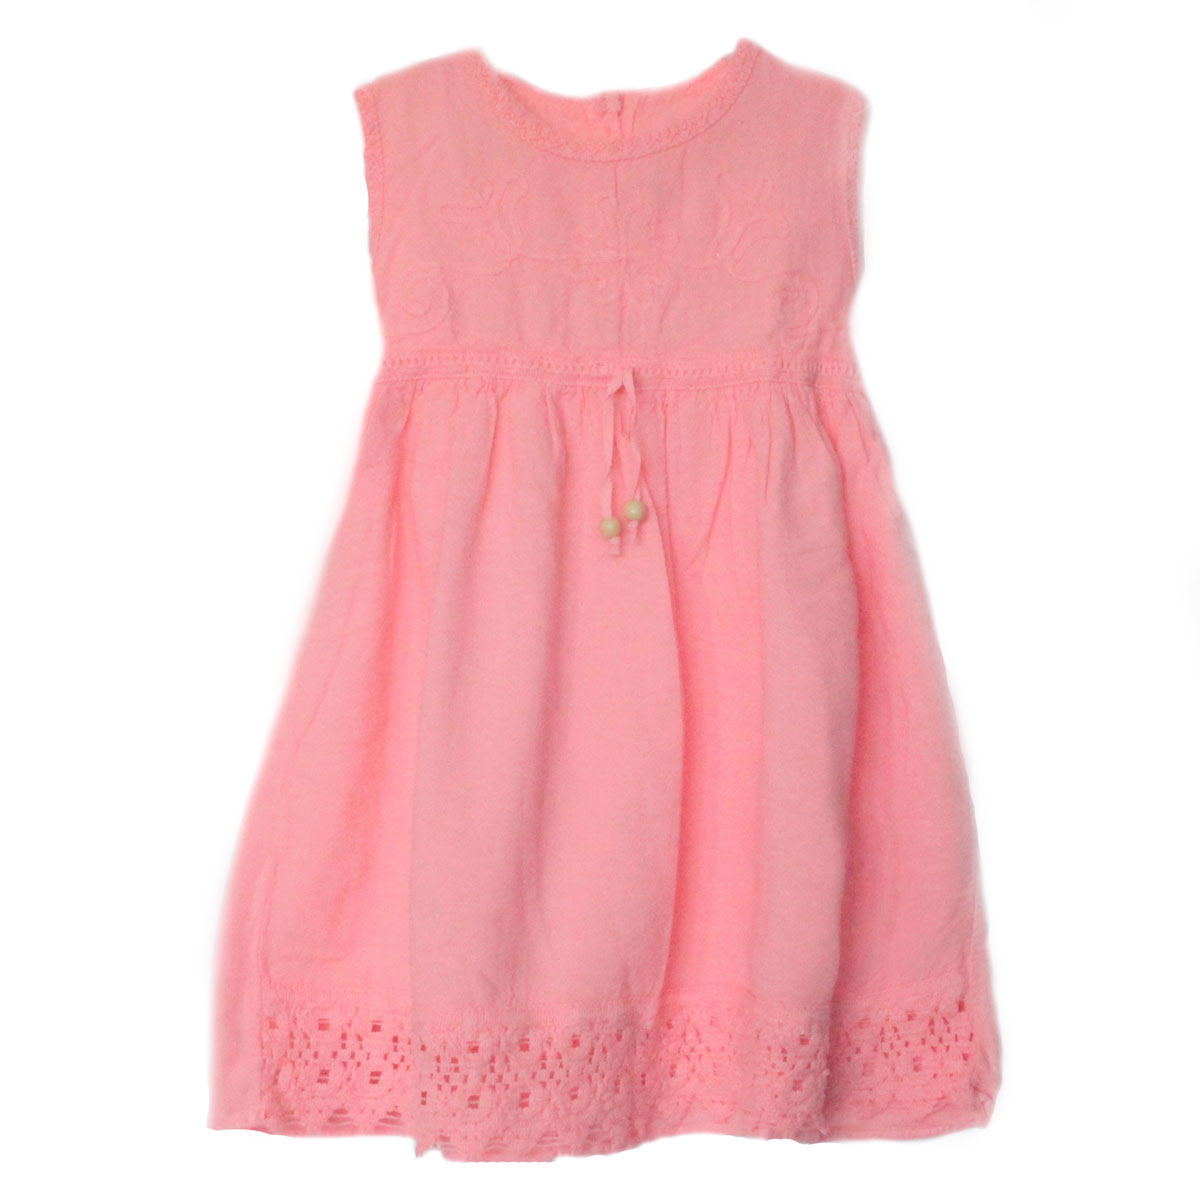 Inka-Products-Robe Sans Manches Fille Rose-En Coton Broderie Péruvienne